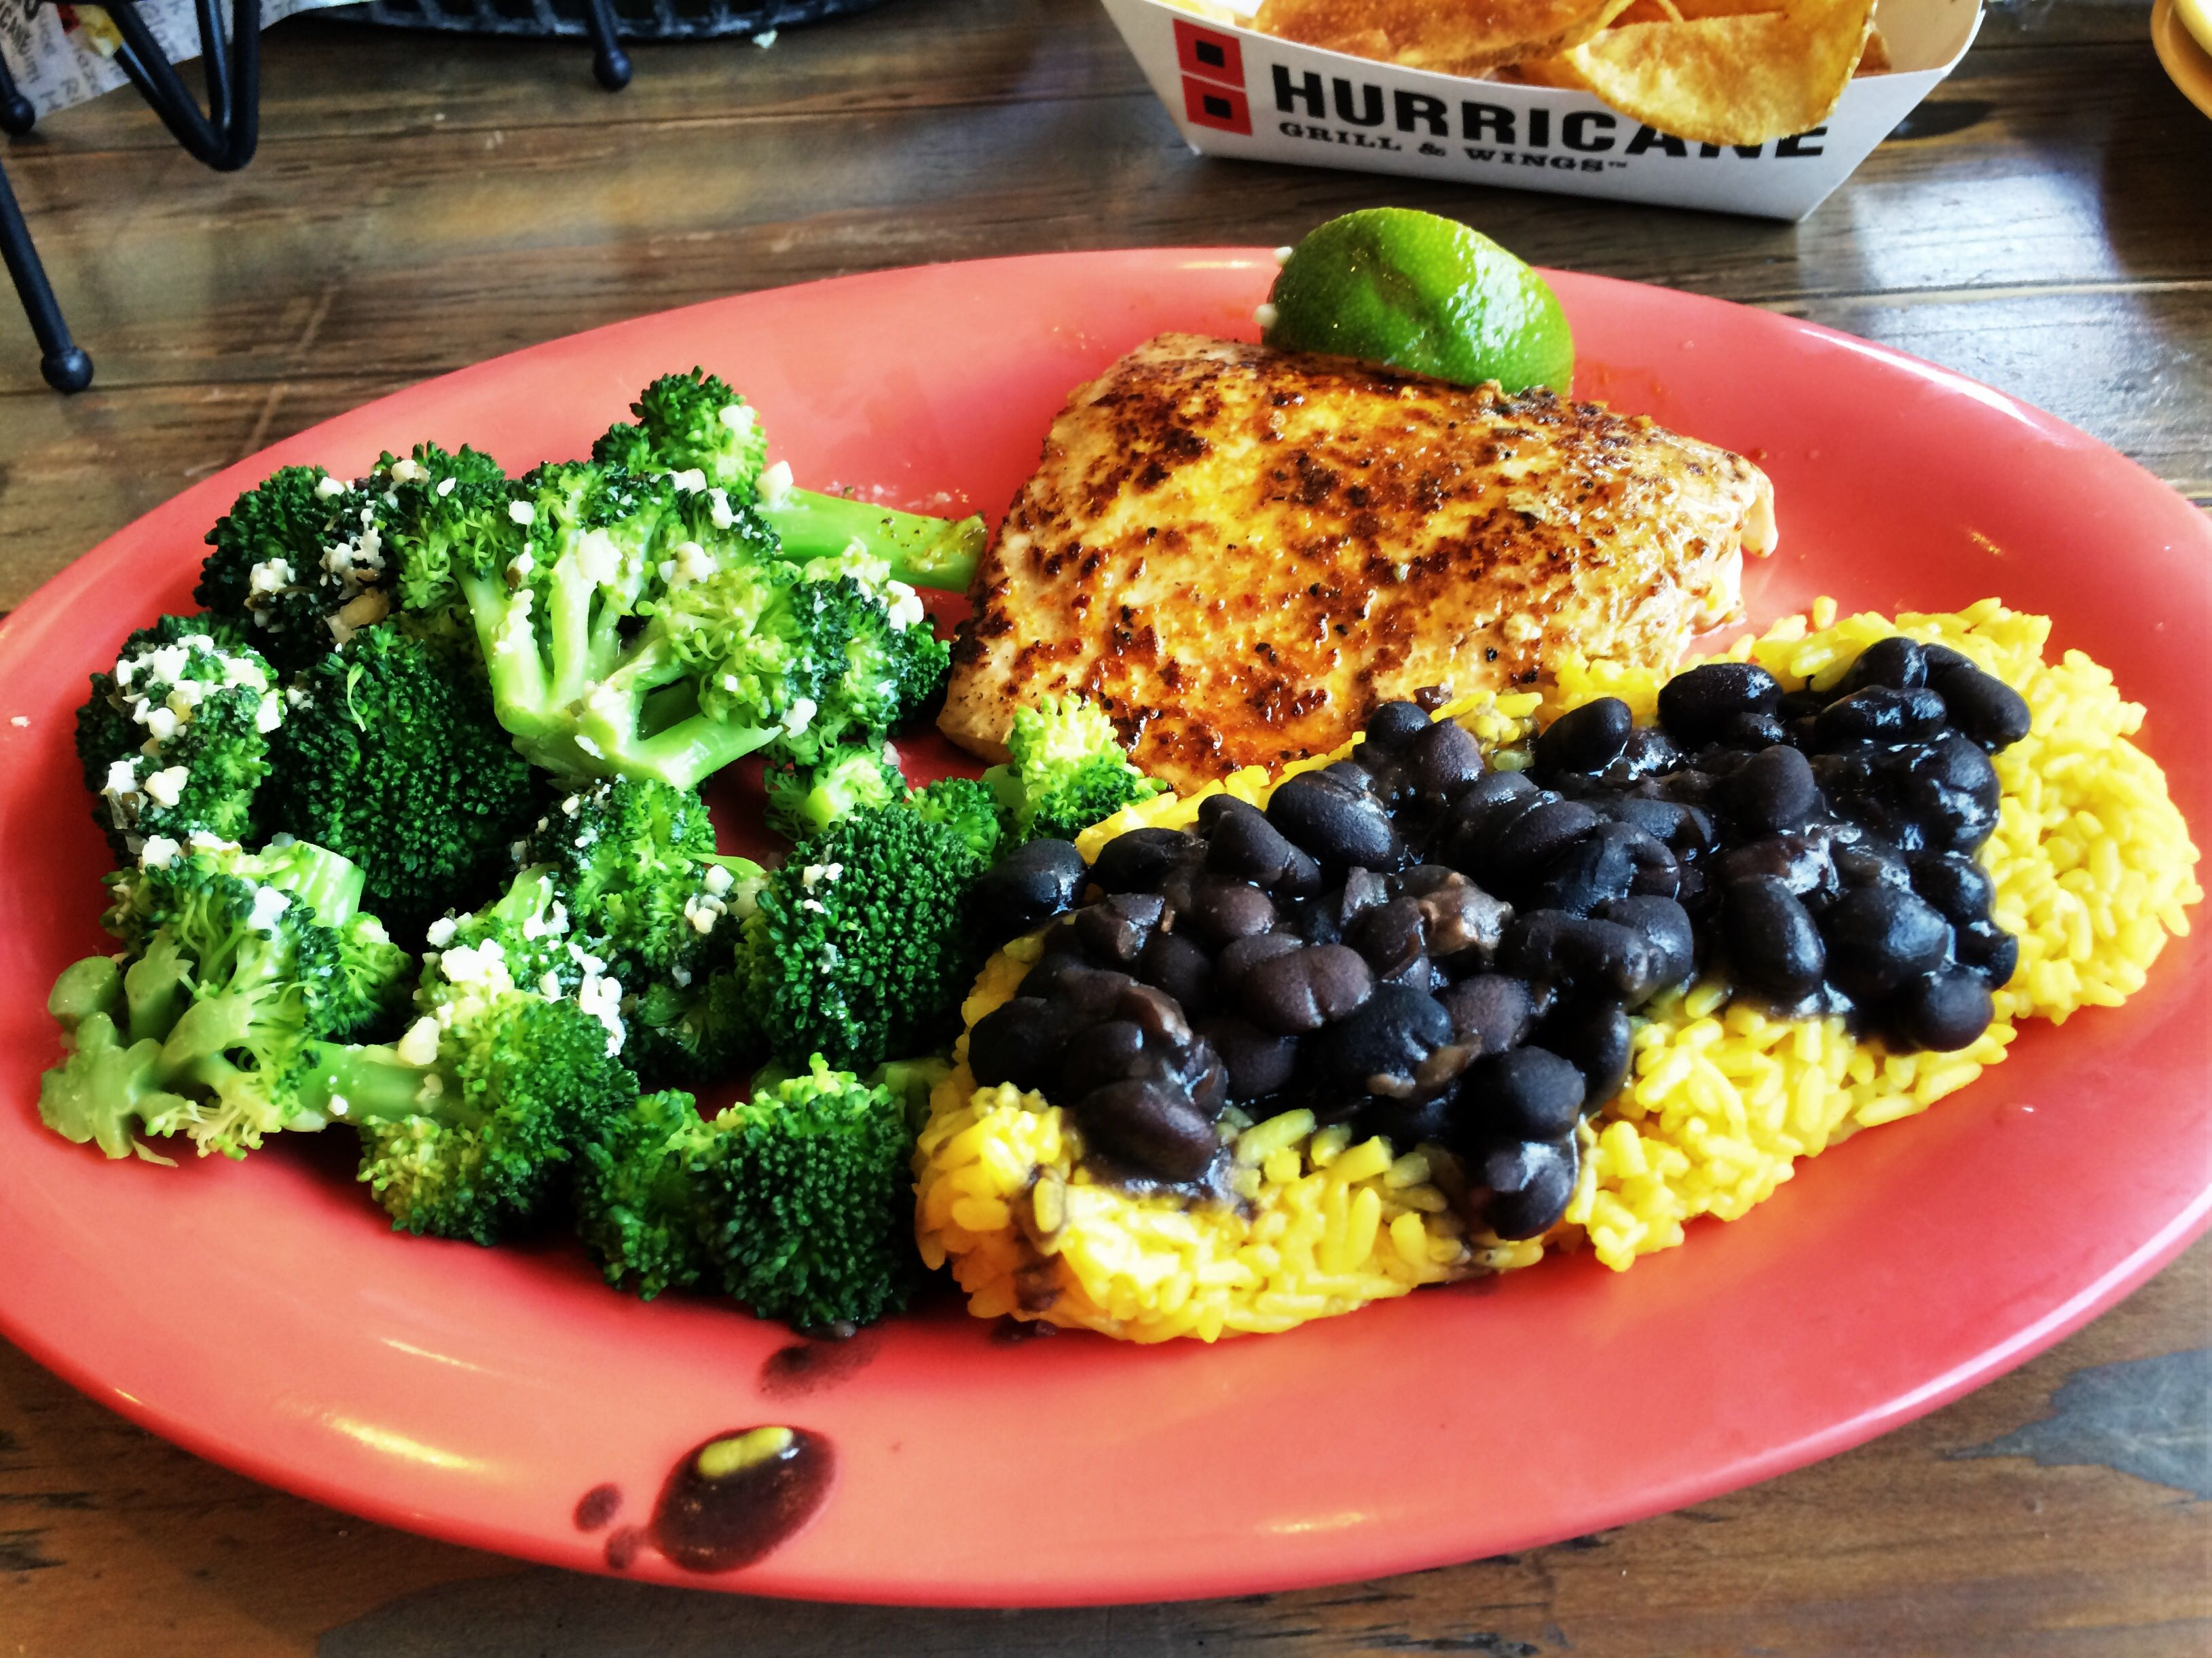 Habanero and lime Salmon with rice and broccoli from Hurricane Grill ...